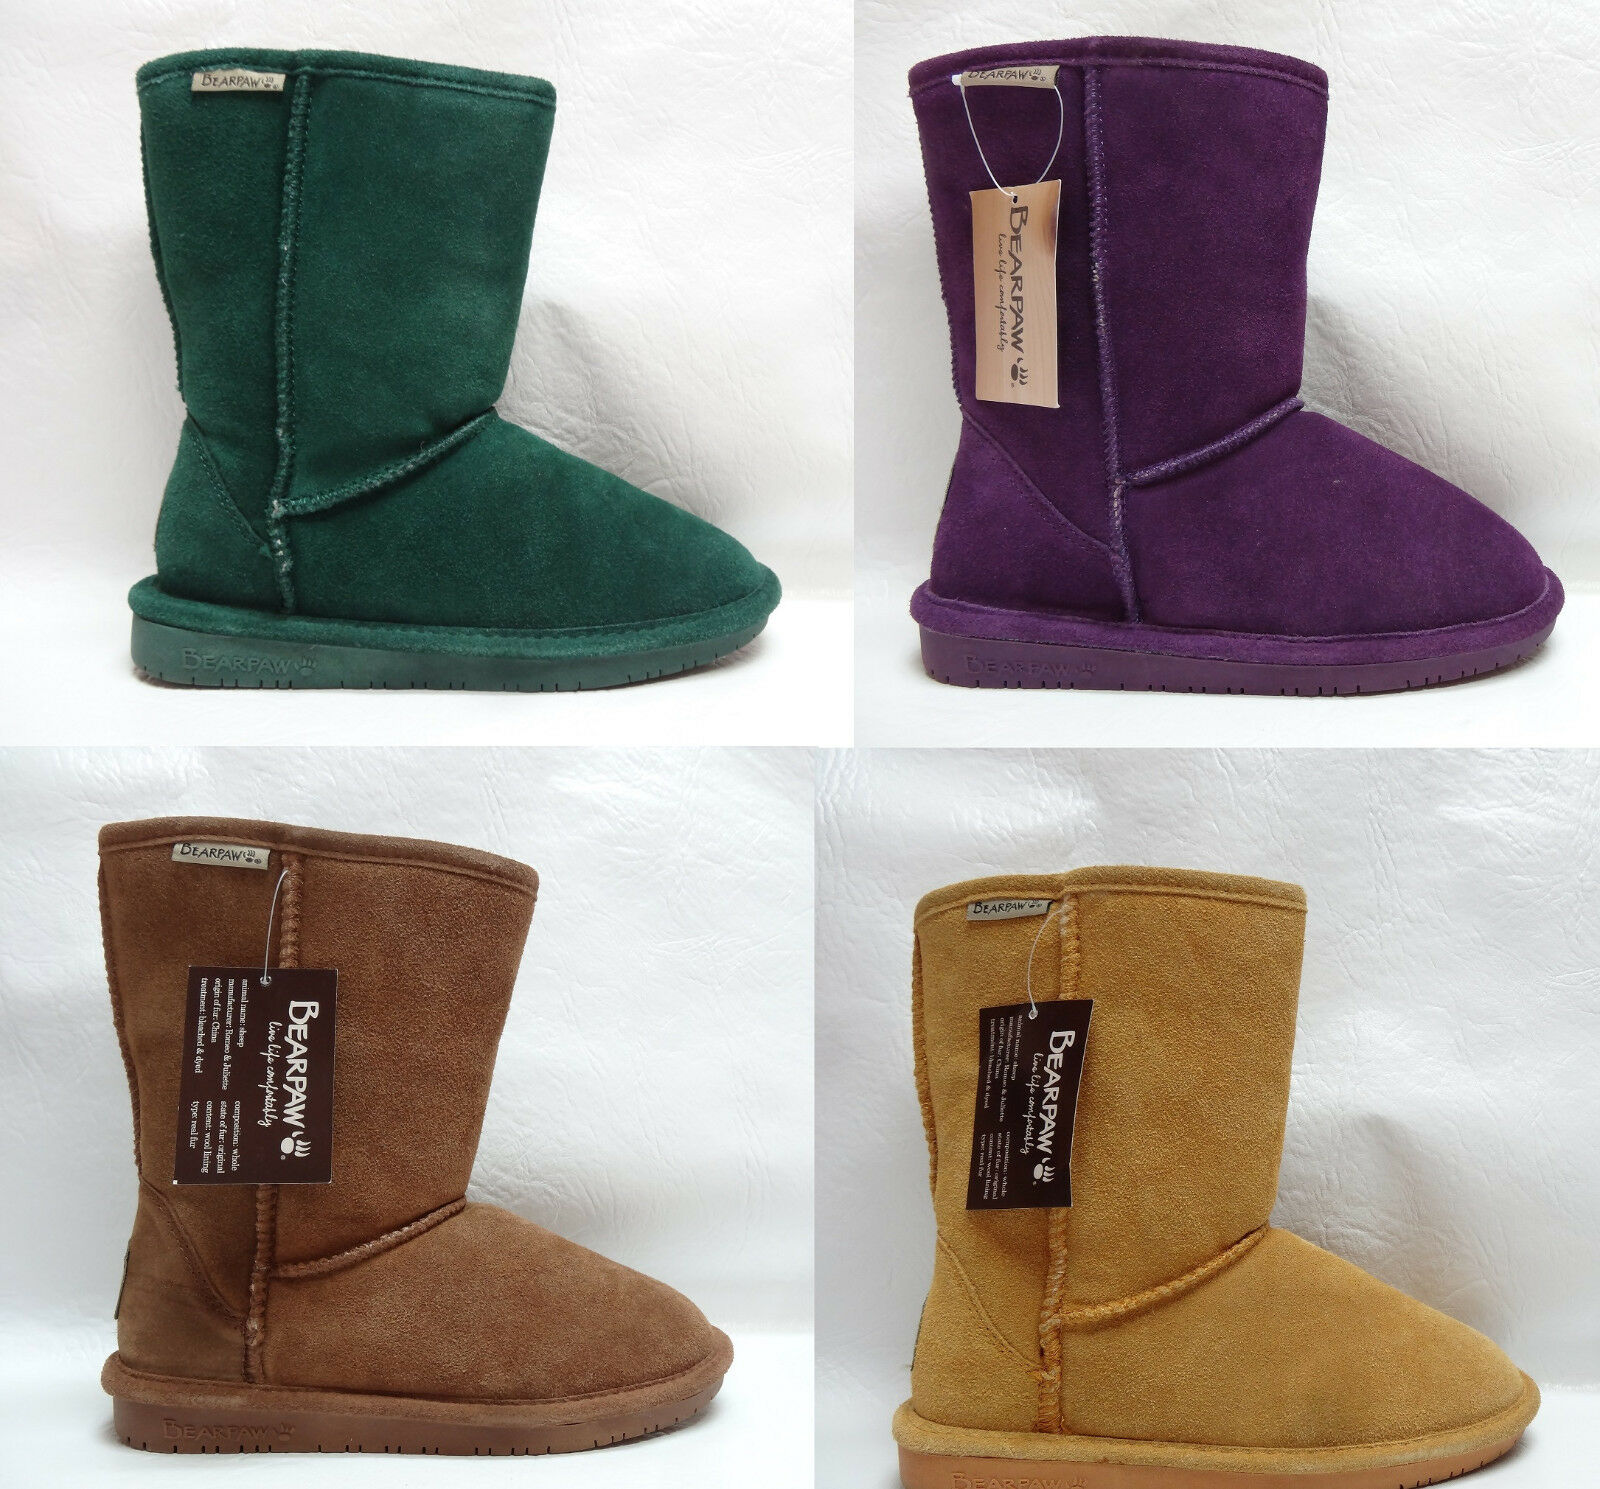 BEARPAW Damenss Cold Weather Winter 608W EMMA Short Sheep Fur suede boots 5 6 10